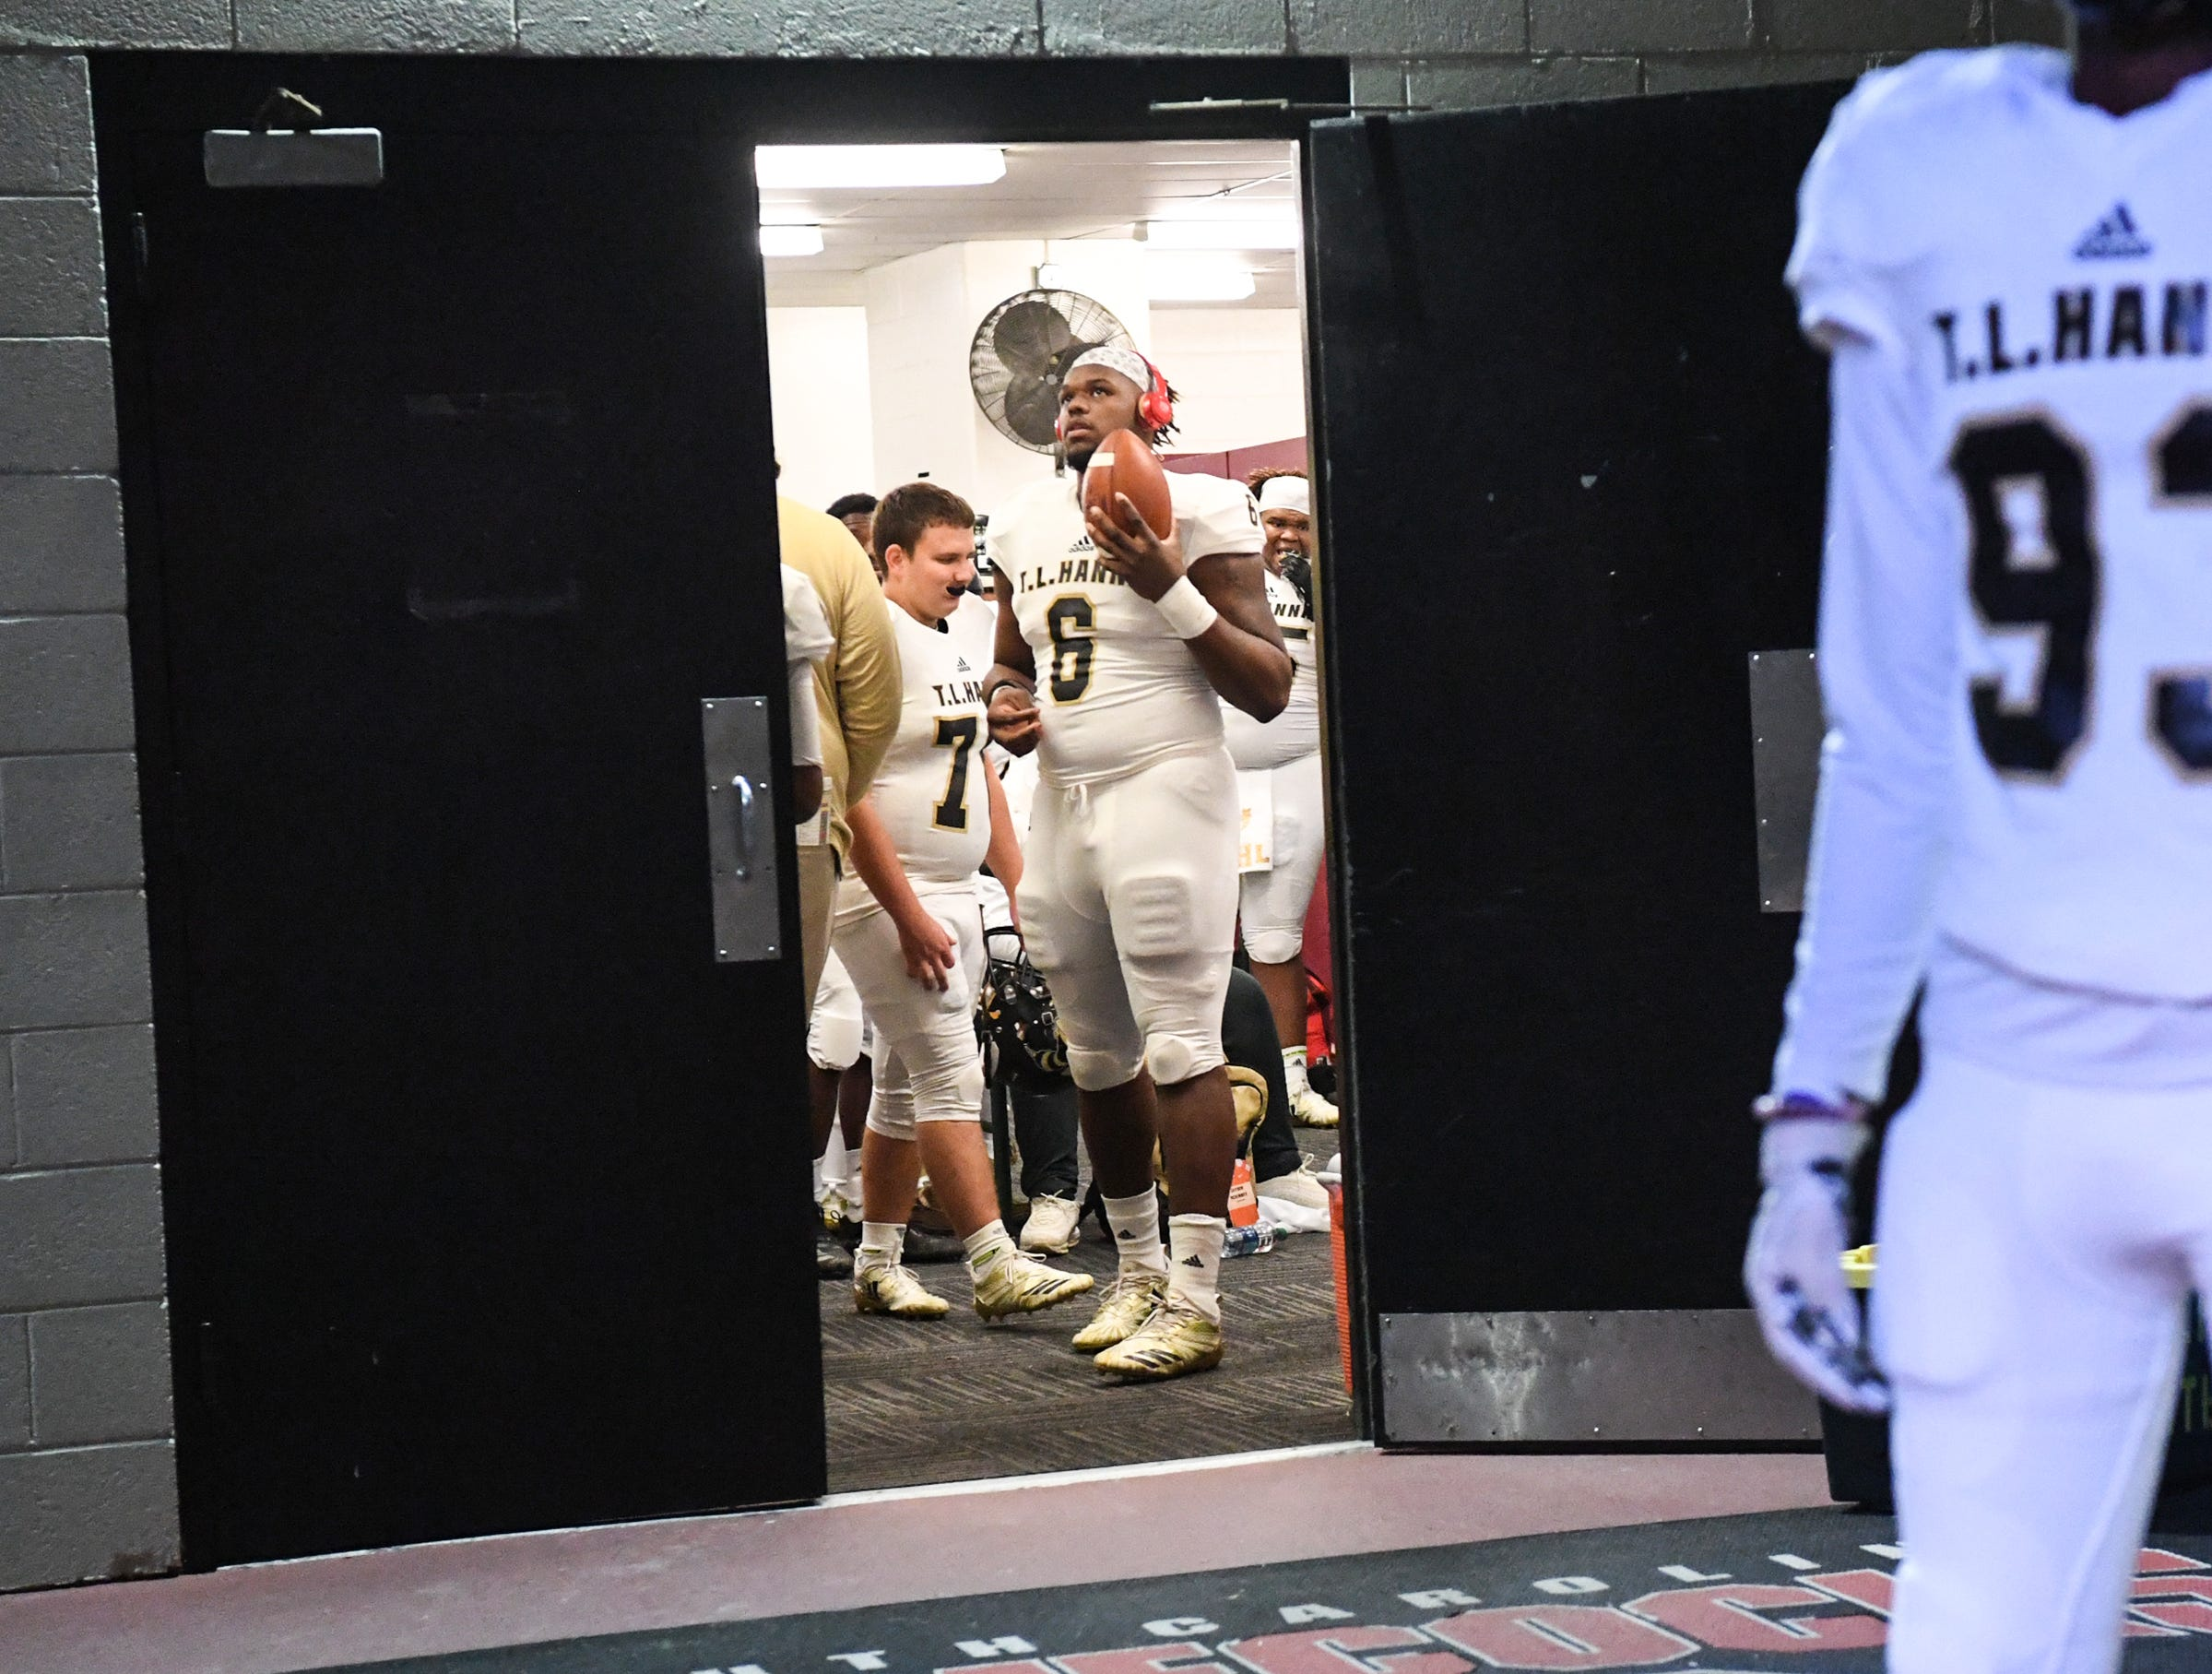 TL Hanna senior Zacch Pickens (6) stands at the door before the kickoff of the Class AAAAA state championship game at Williams-Brice Stadium in Columbia Saturday, December 8, 2018.